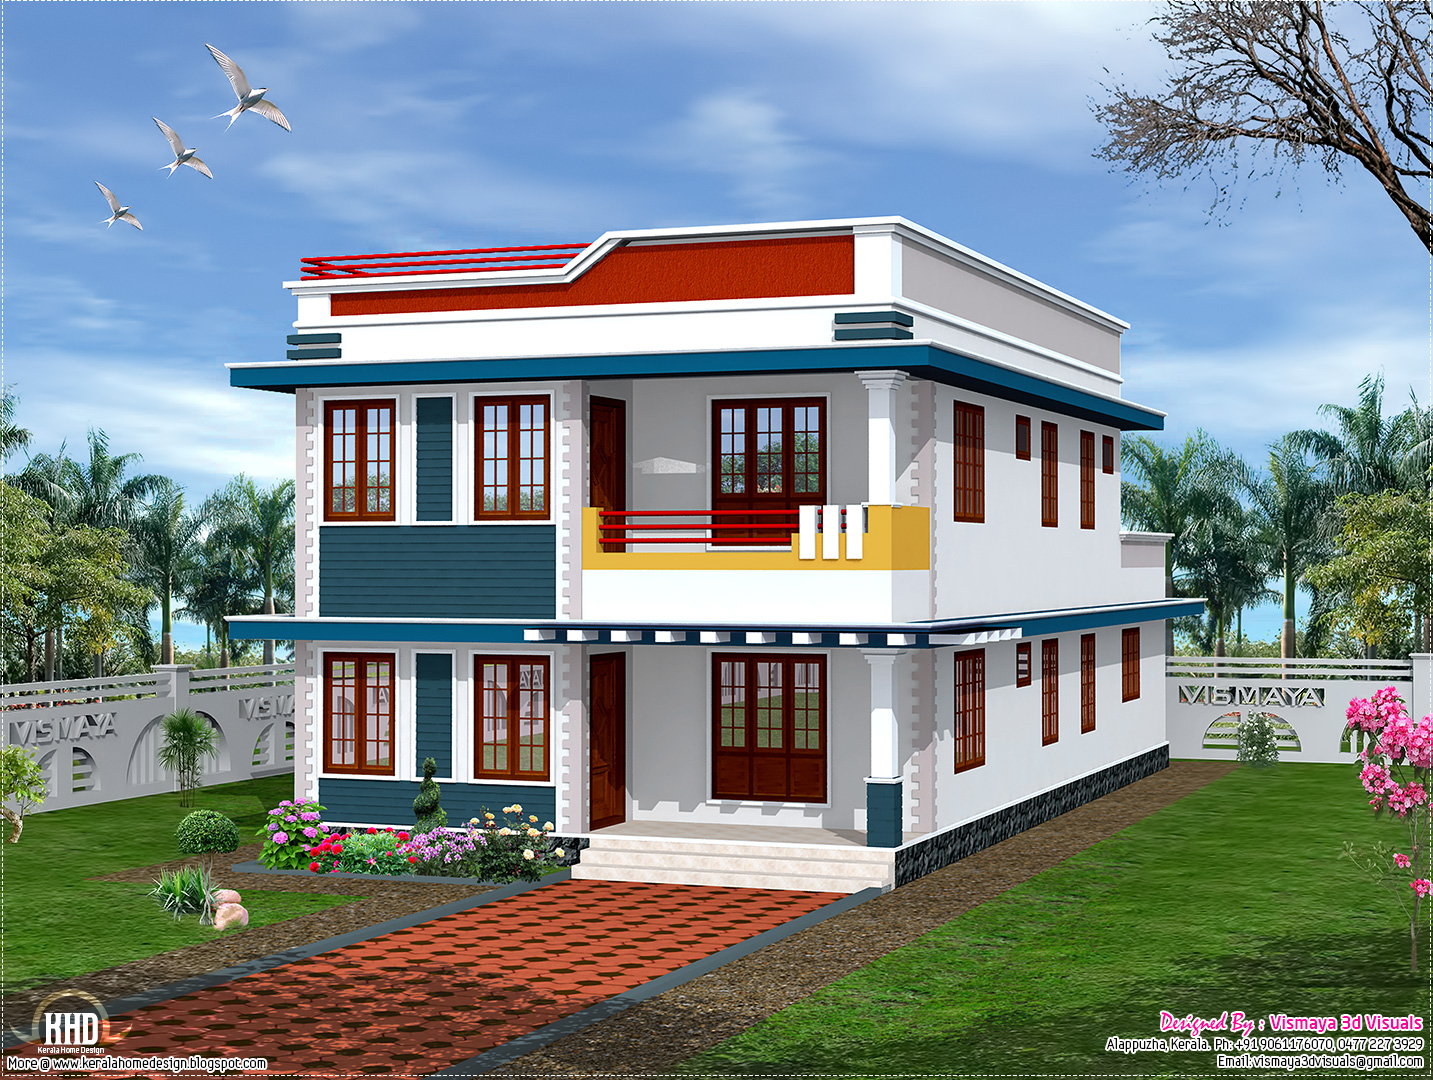 Bedroom Home Design By Vismaya 3d Visuals Ambalapuzha Alappuzha